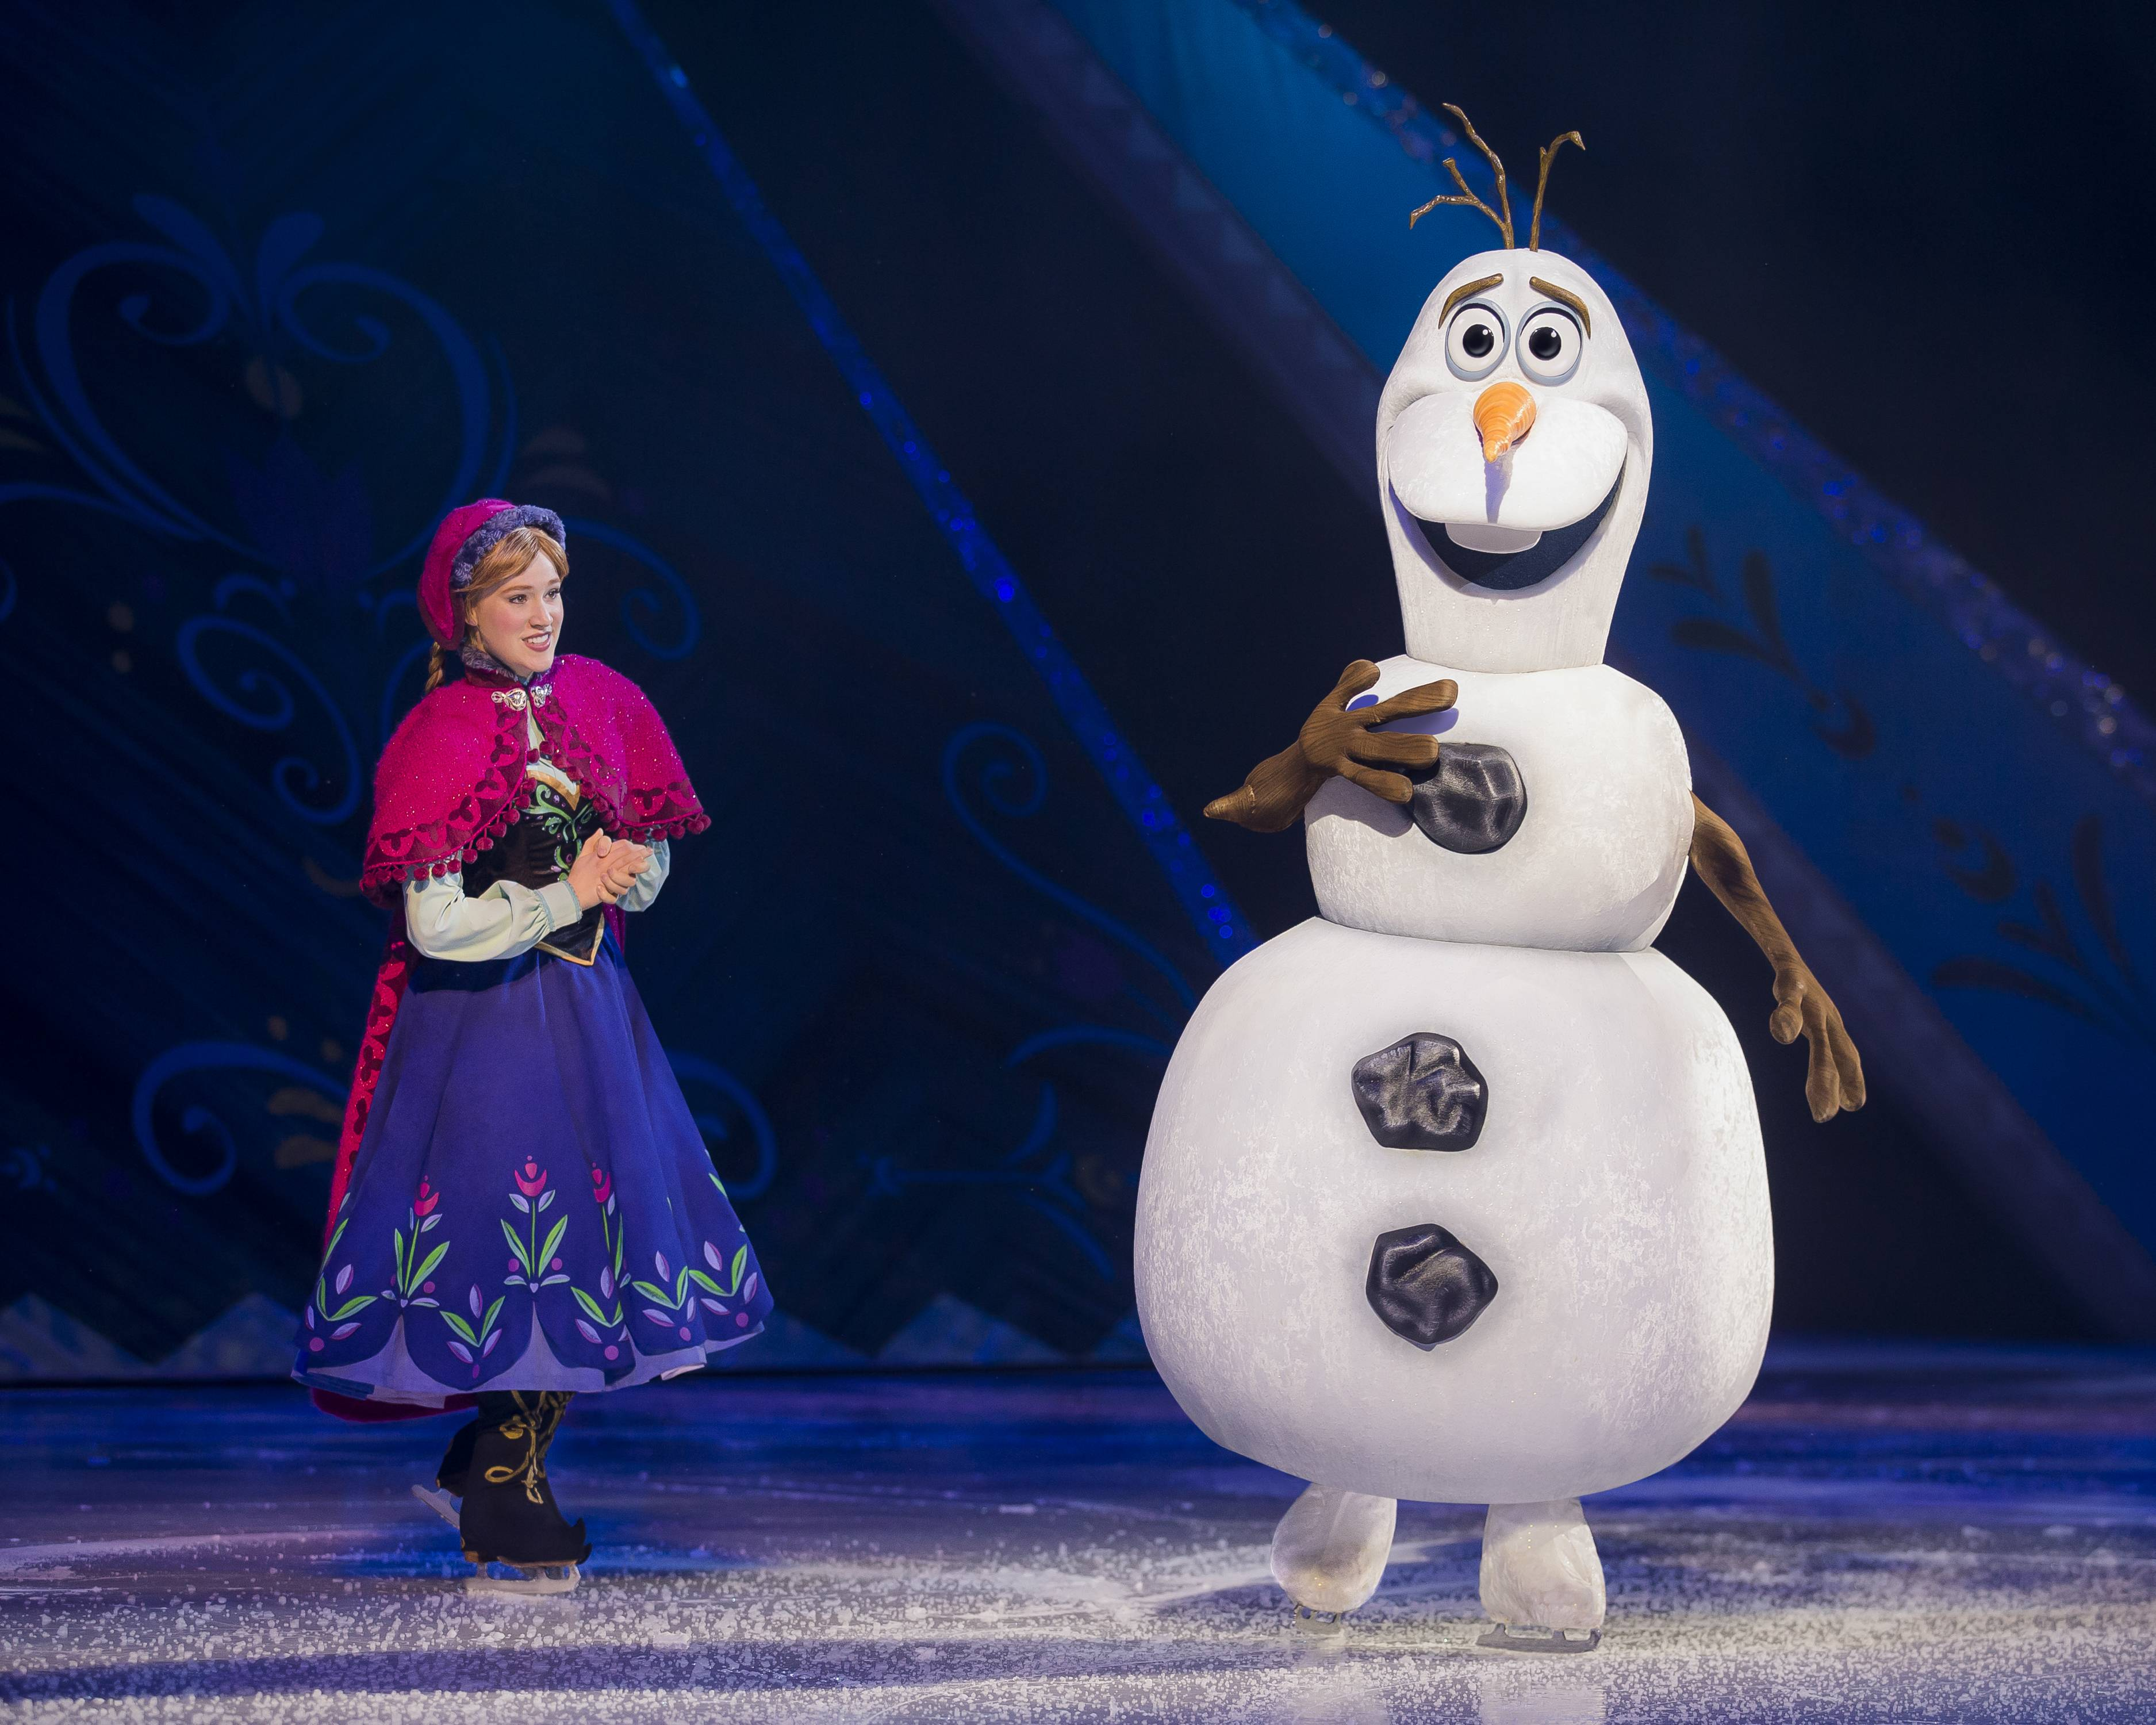 D34_20140906_09744_edit - ANNA and OLAF